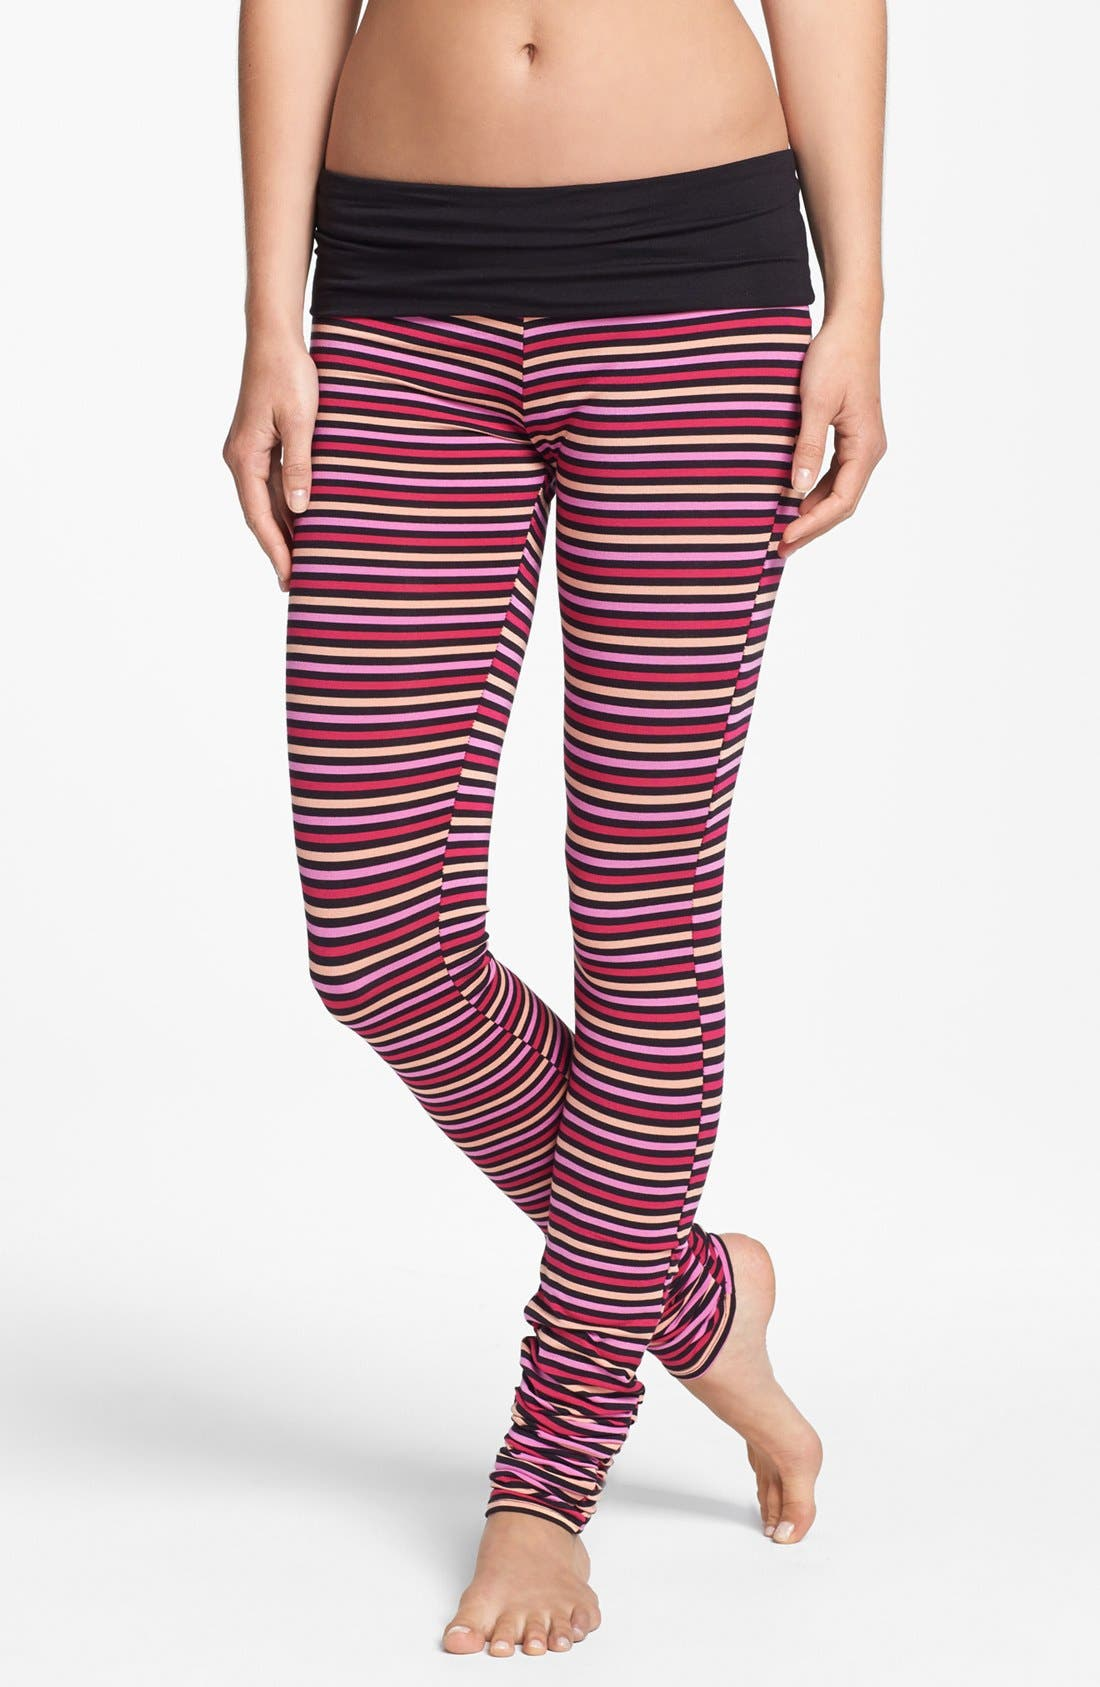 Main Image - DKNY 'Soho Mews Yoga Skinnies' Leggings